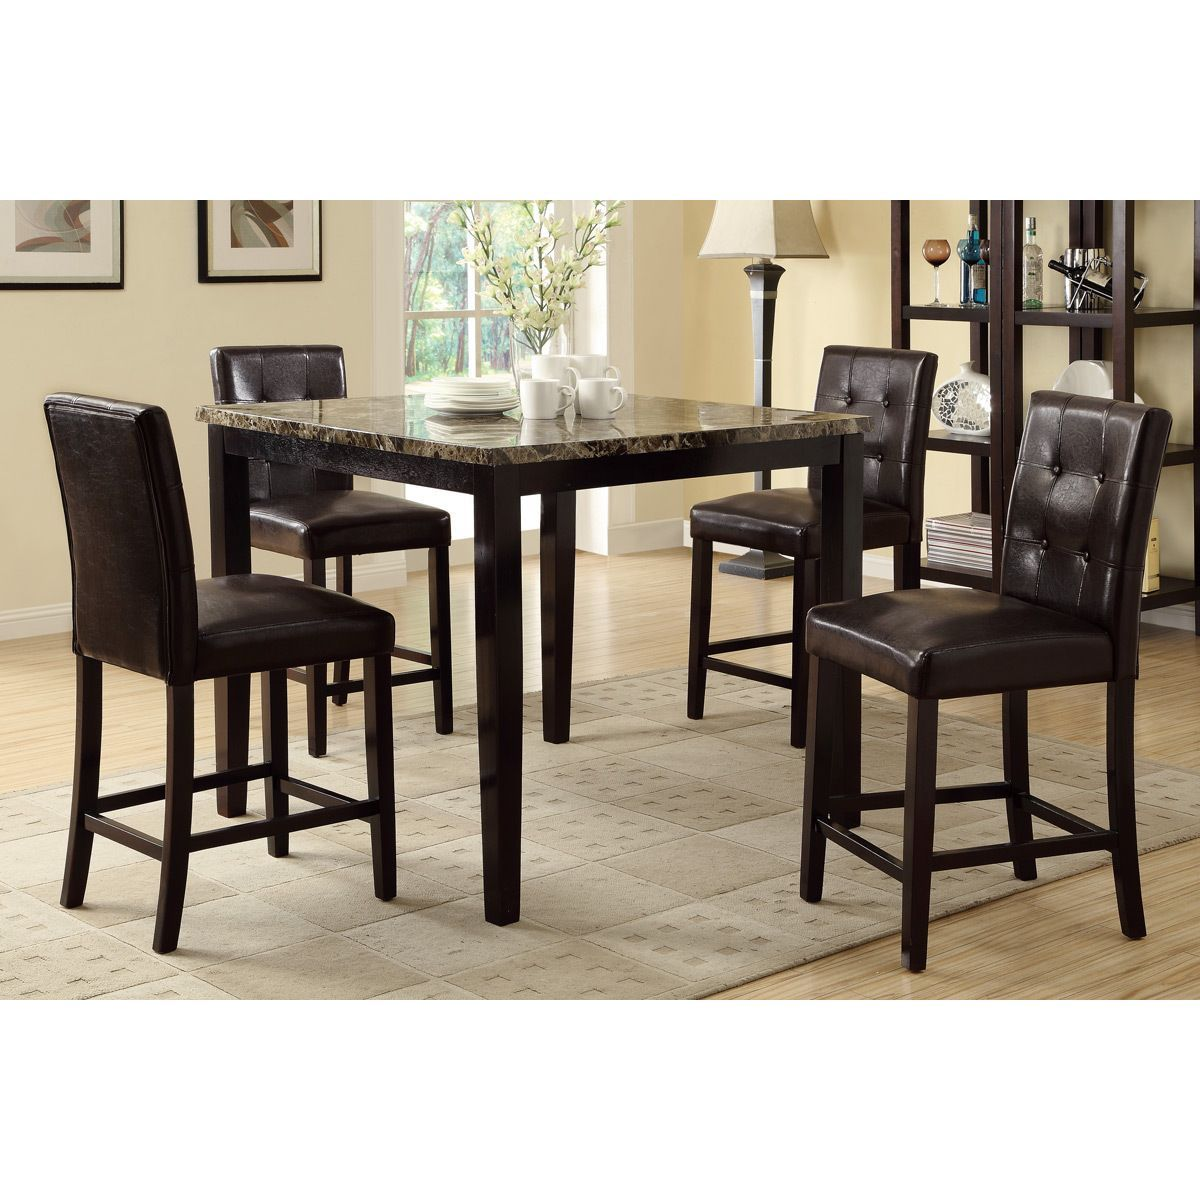 Create an elegant dining space with the piece Bayfield dining set